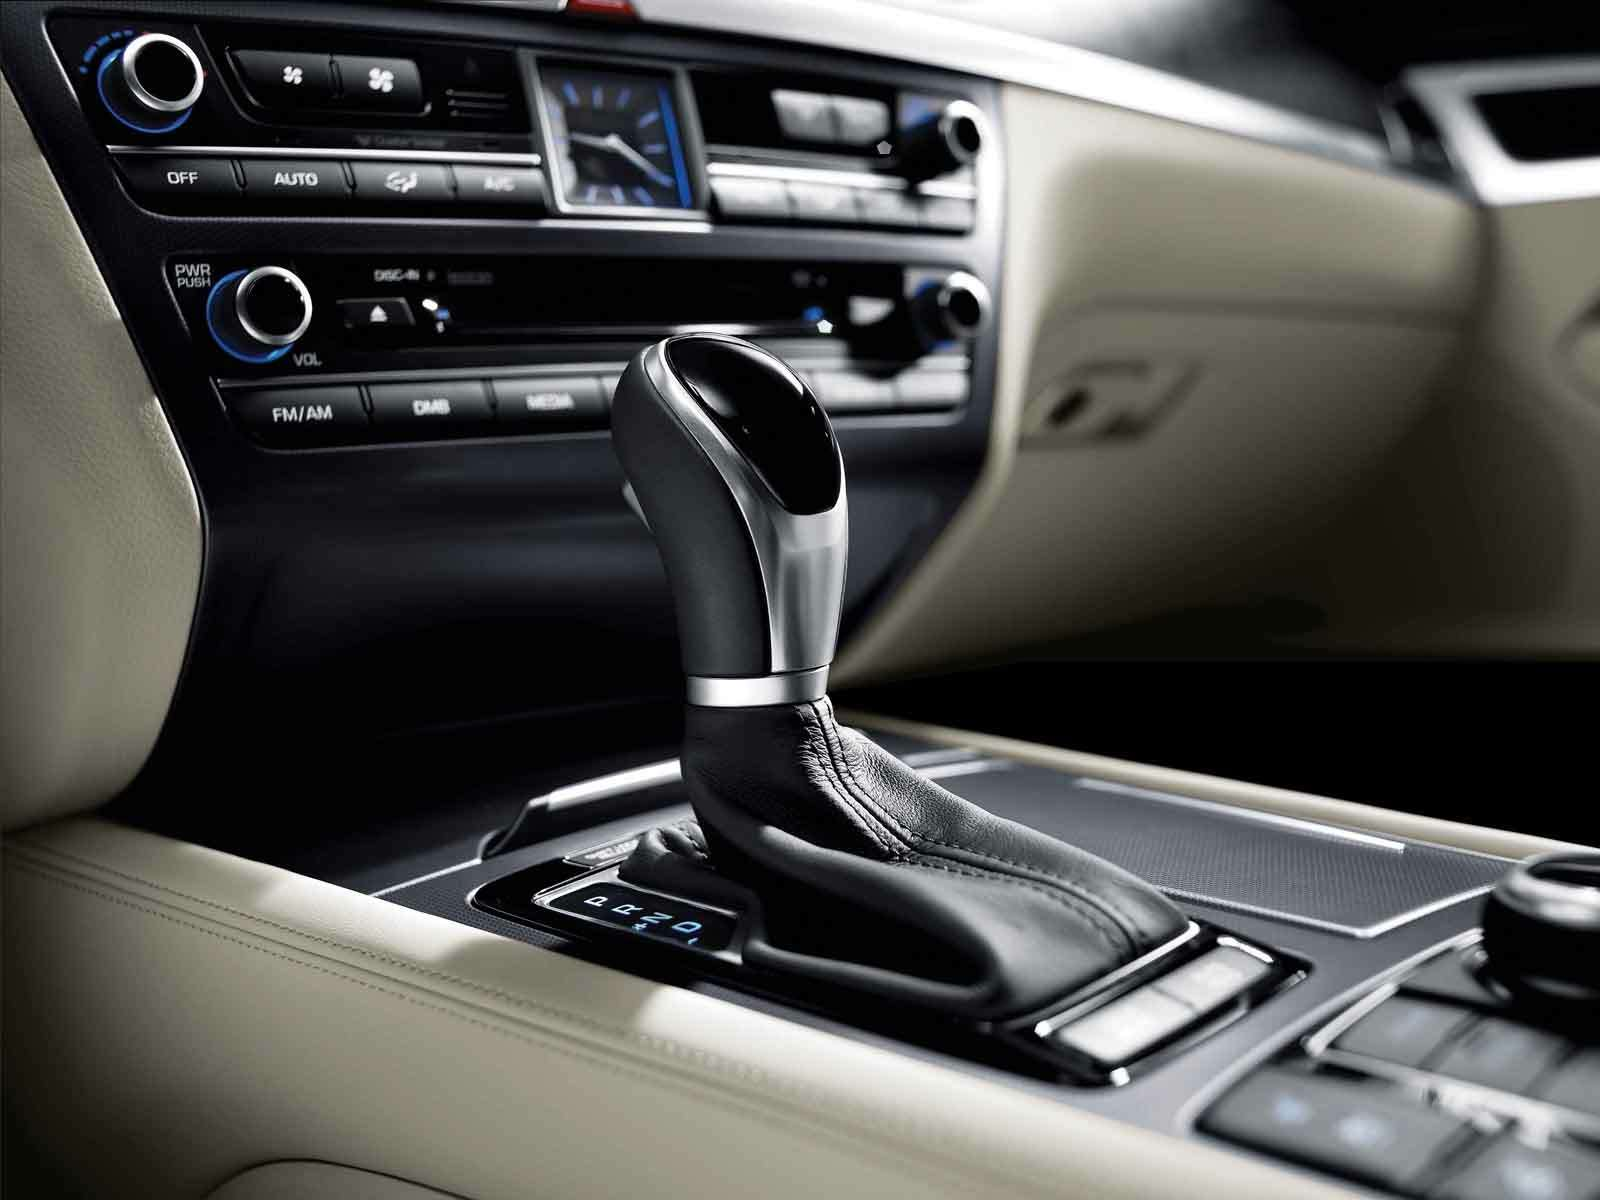 DH_Gear shifter knob